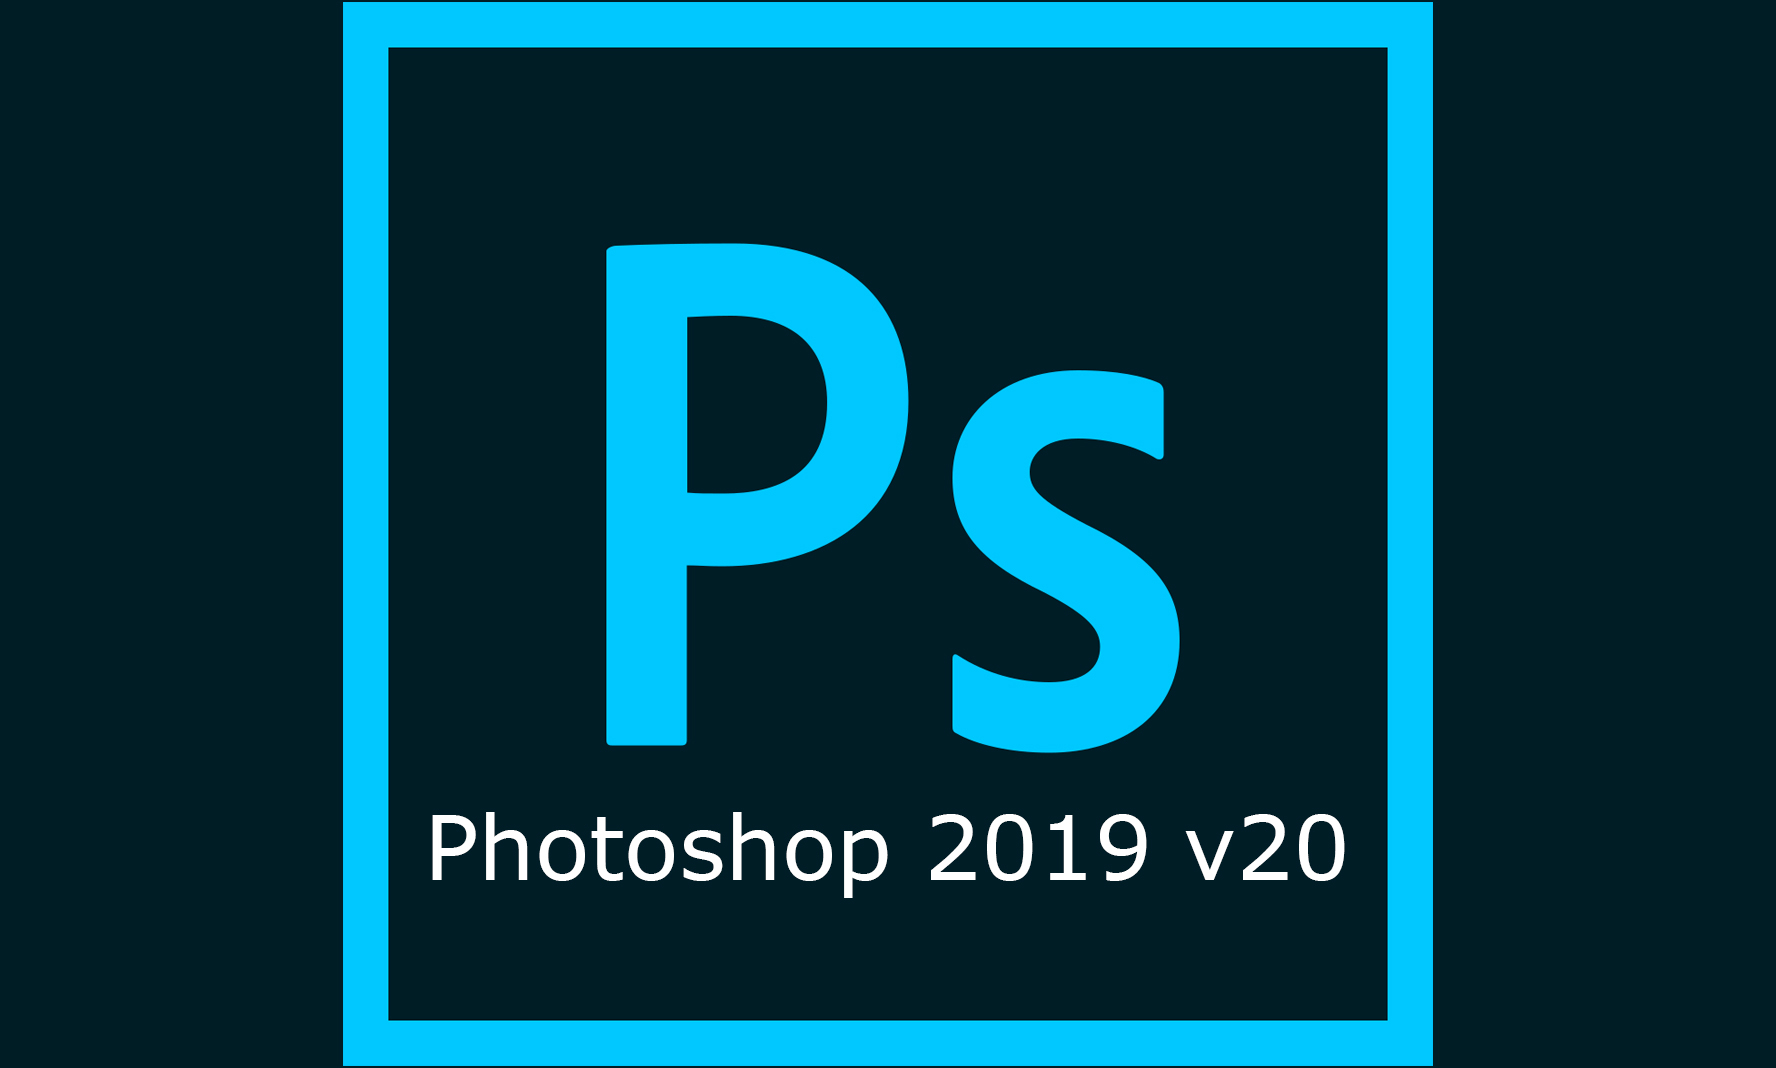 Adobe Photoshop CC 2019 (v20.0) Multilingual